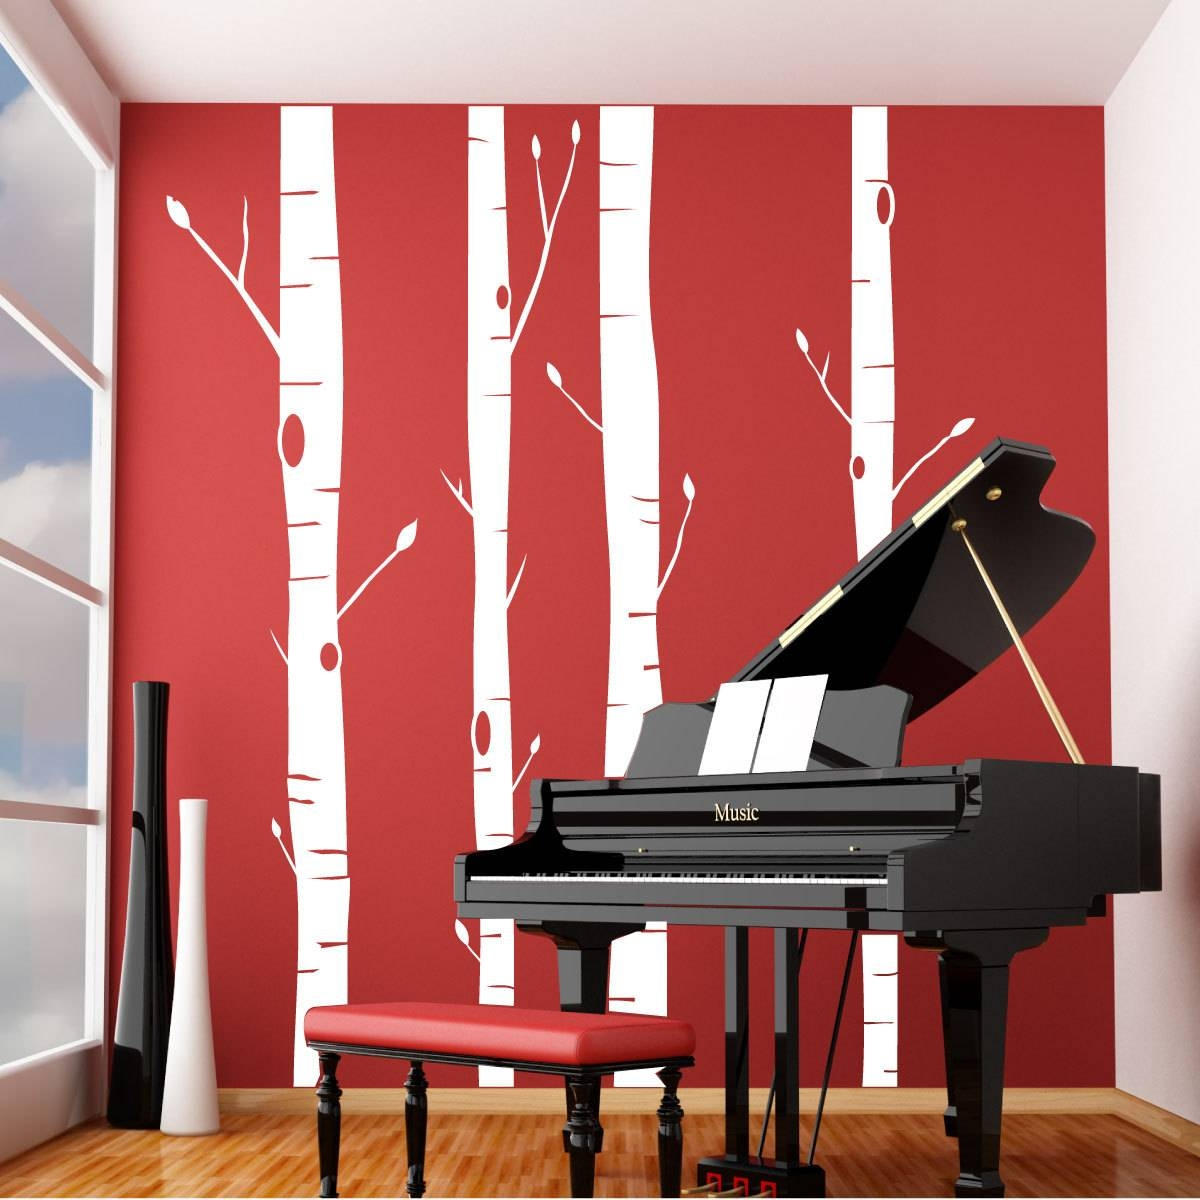 Aspen Trees Vinyl Wall Decal Regarding Latest Aspen Tree Wall Art (View 4 of 20)